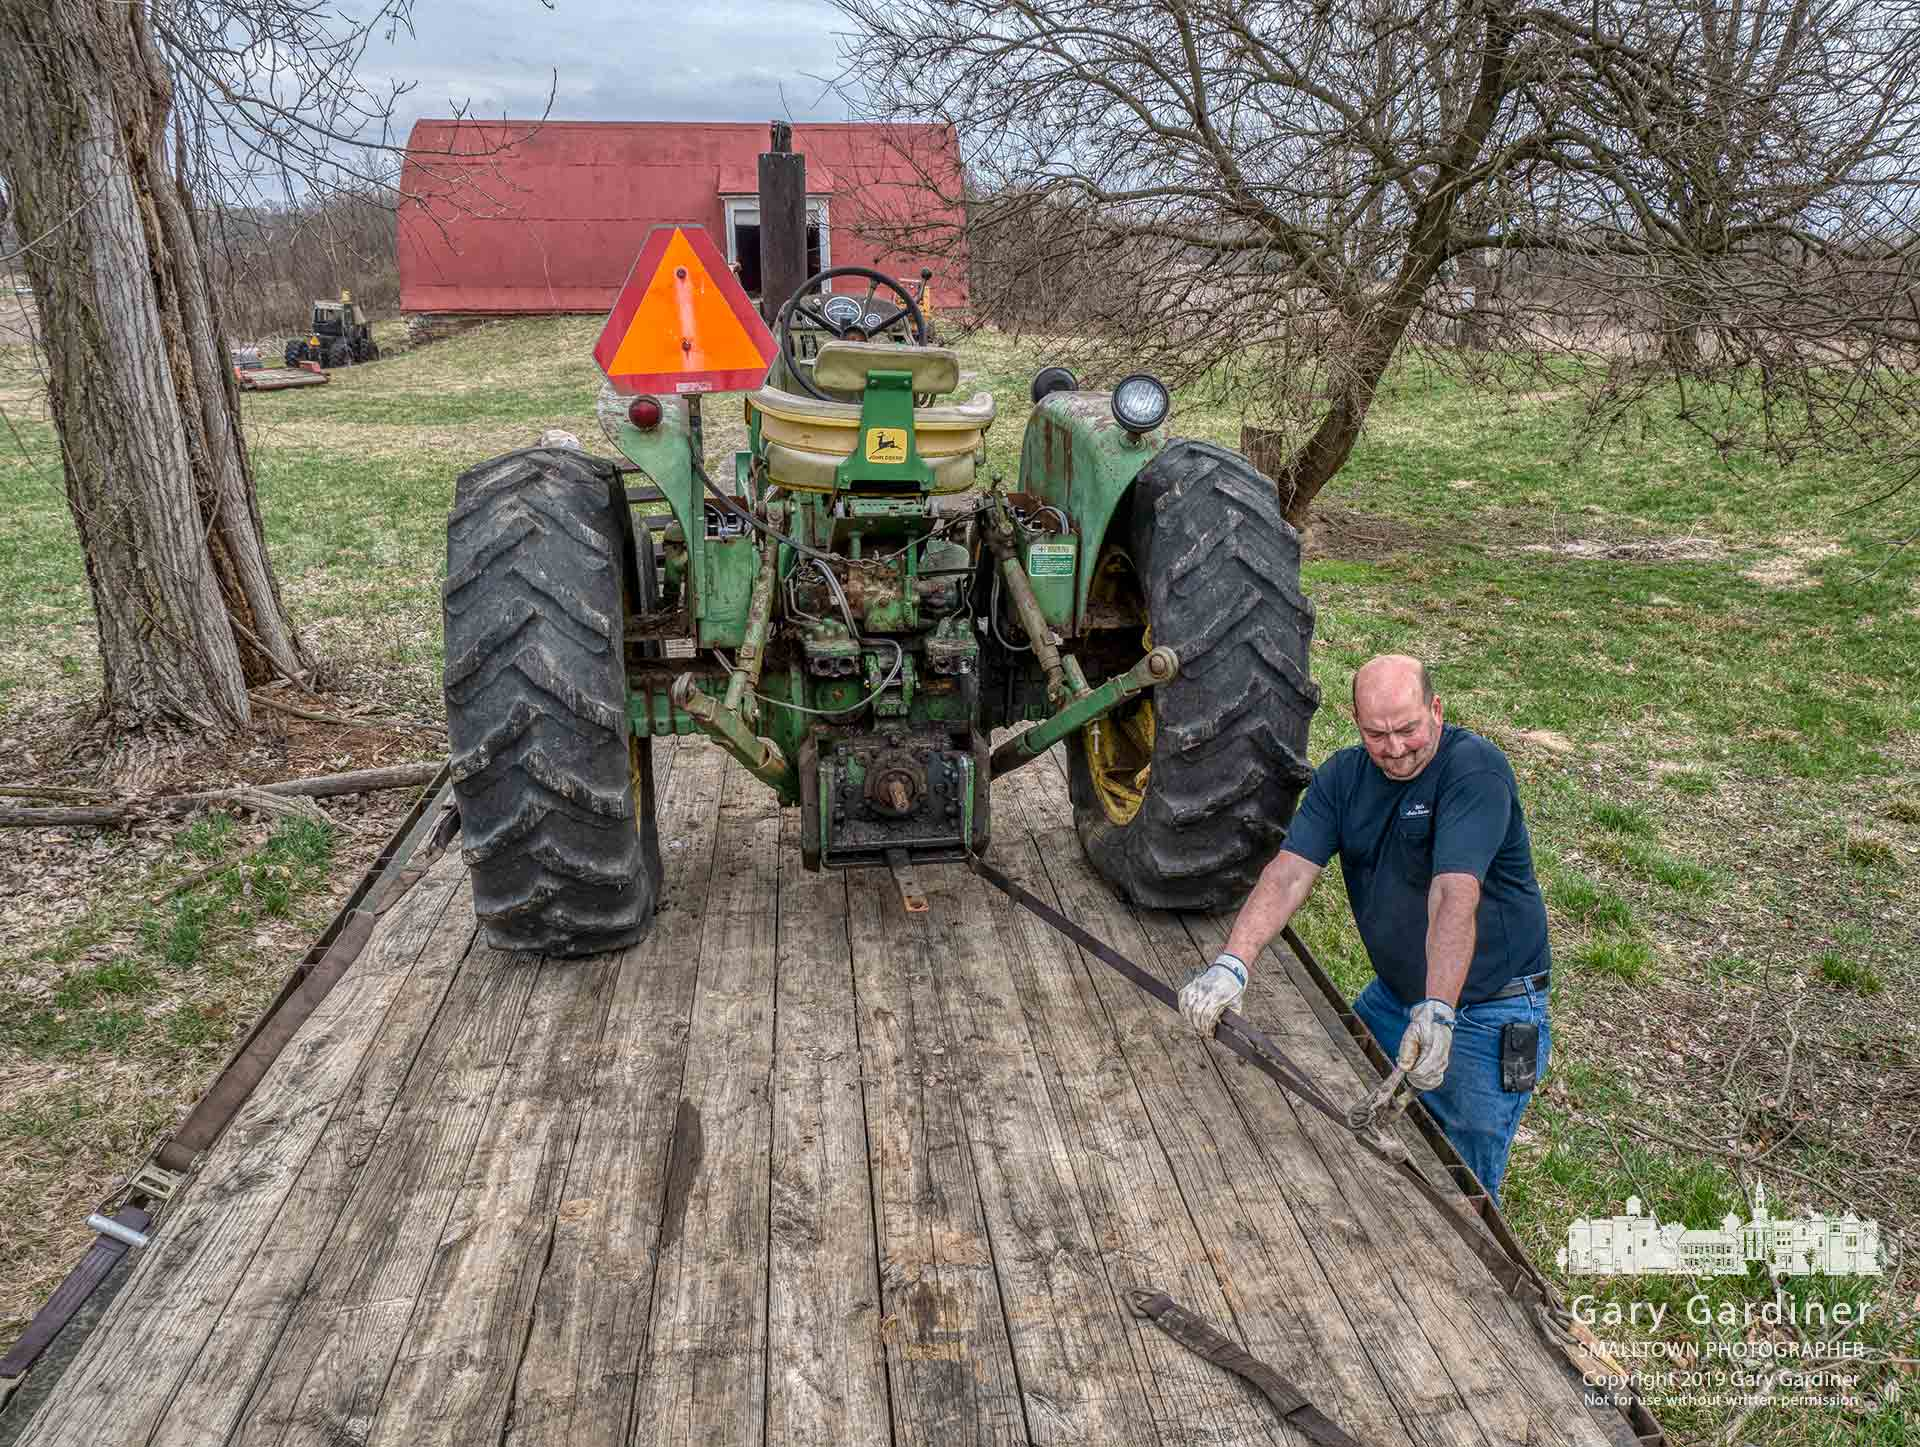 A tractor being moved from the Braun Farm is cinched tight after being loaded on a trailer Sunday afternoon. My Final Photo for April 7, 2019.